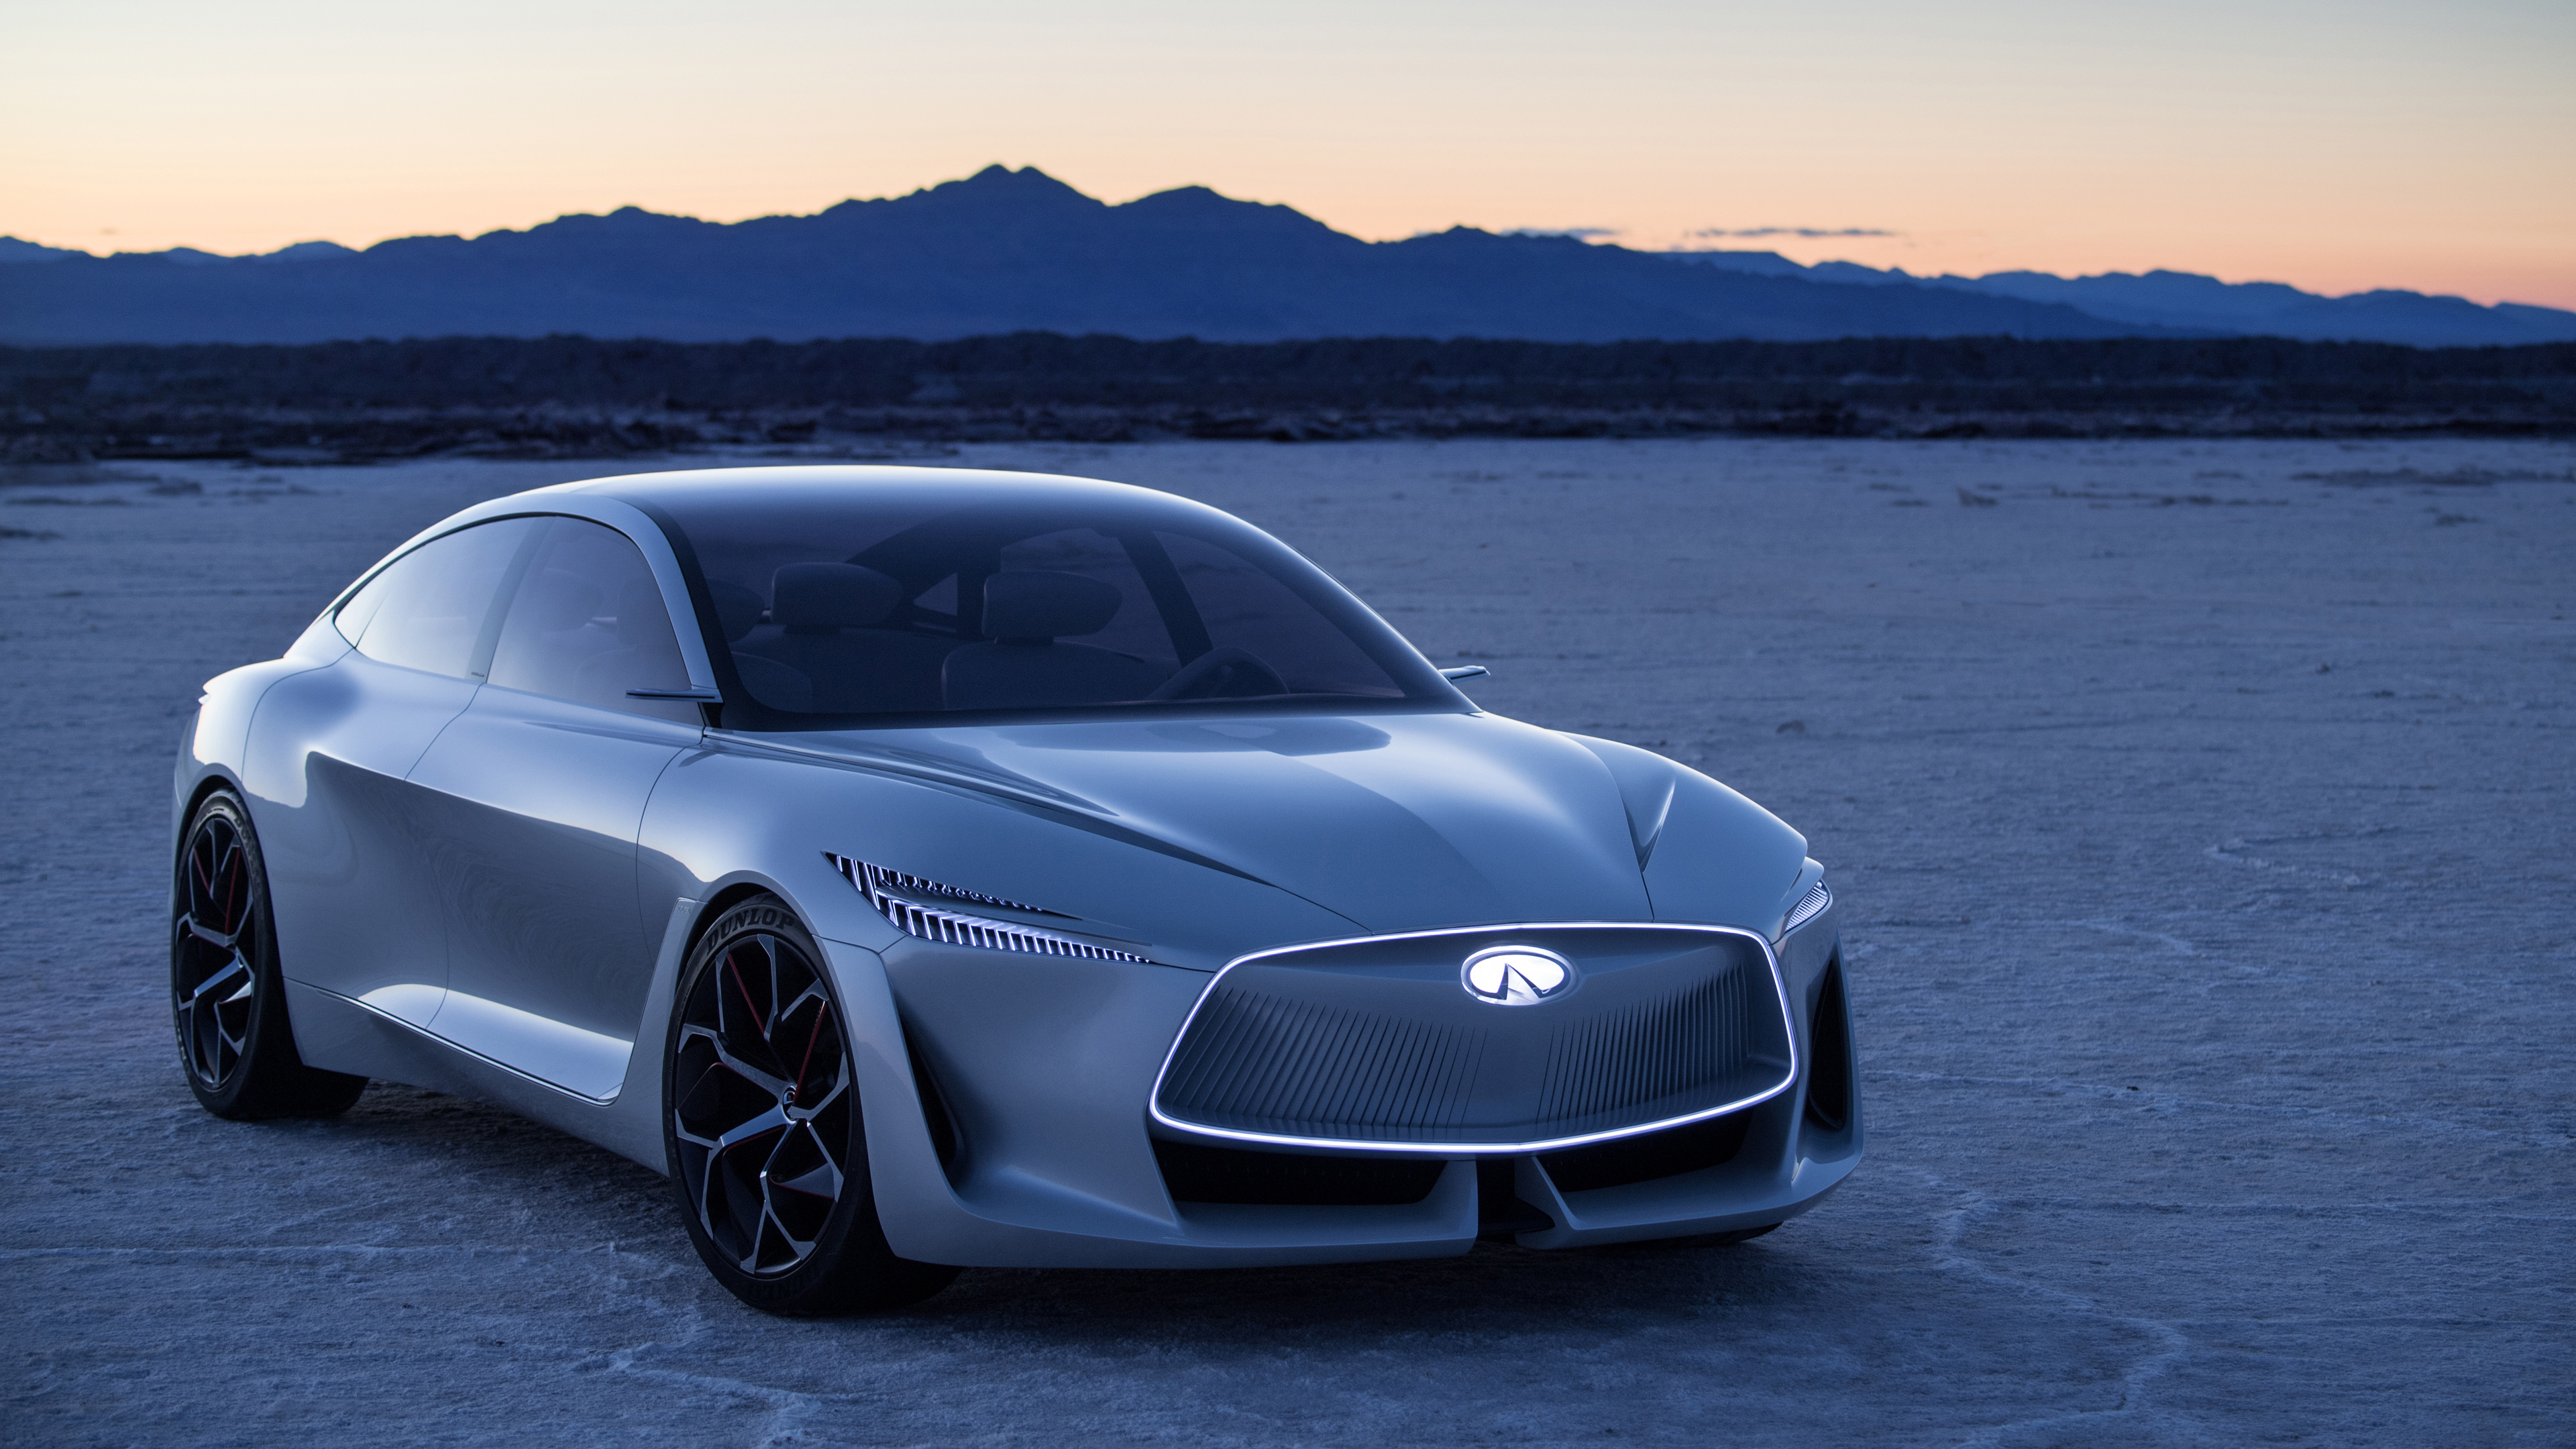 2018 Infiniti Q Inspiration Concept 4K 6 Wallpaper